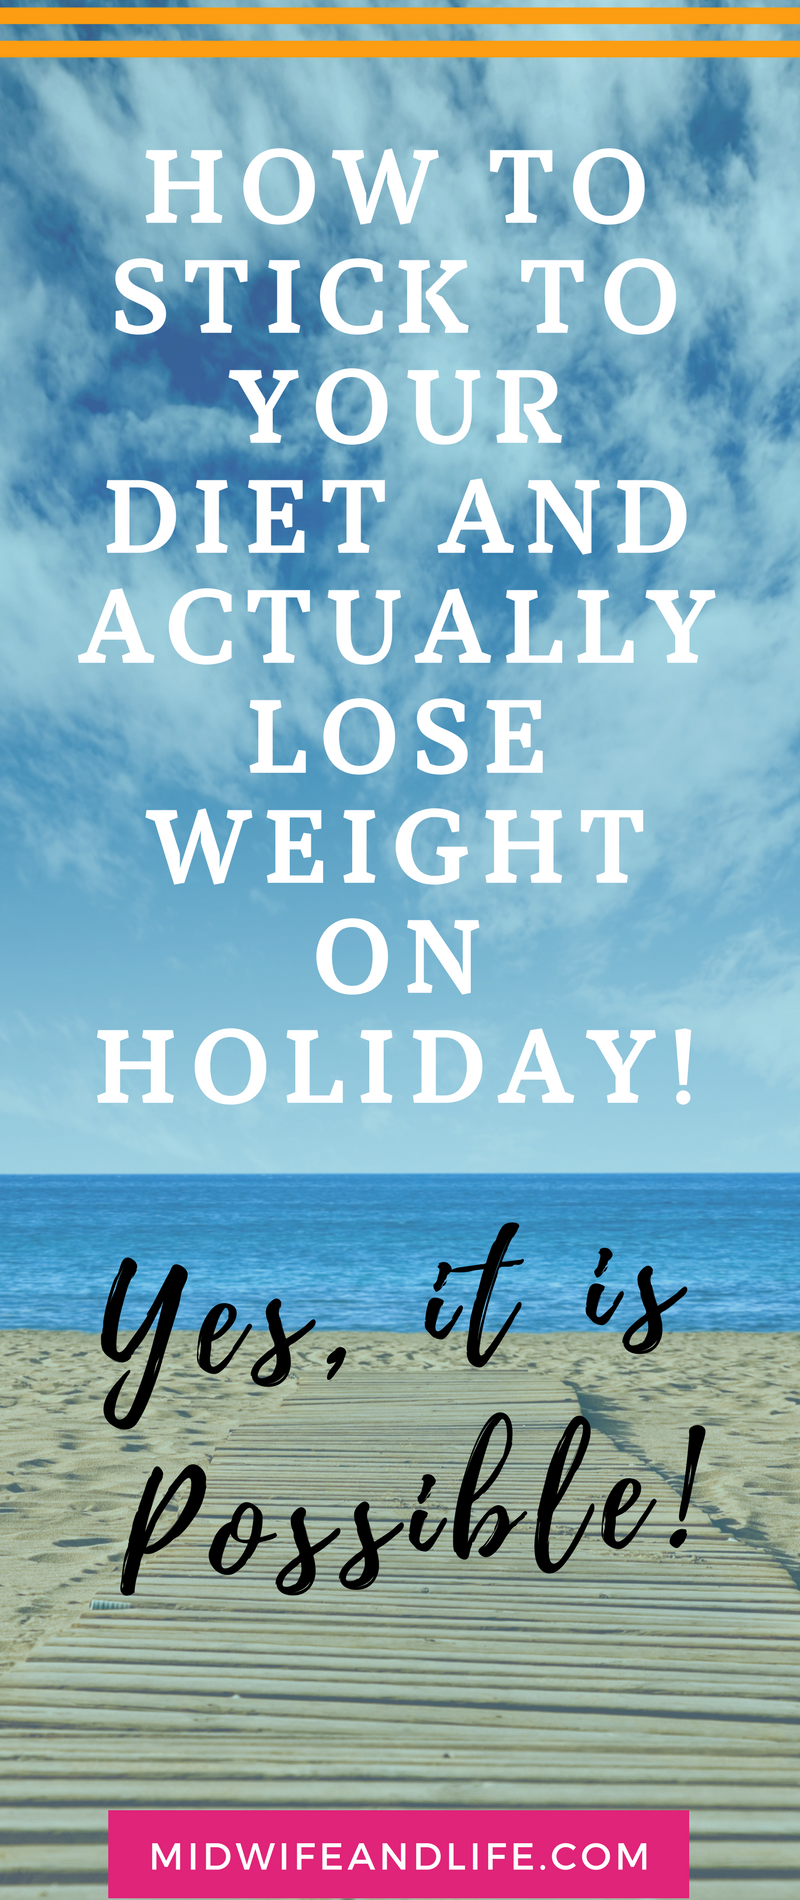 Losing Weight on Holiday: Is It Even Possible?